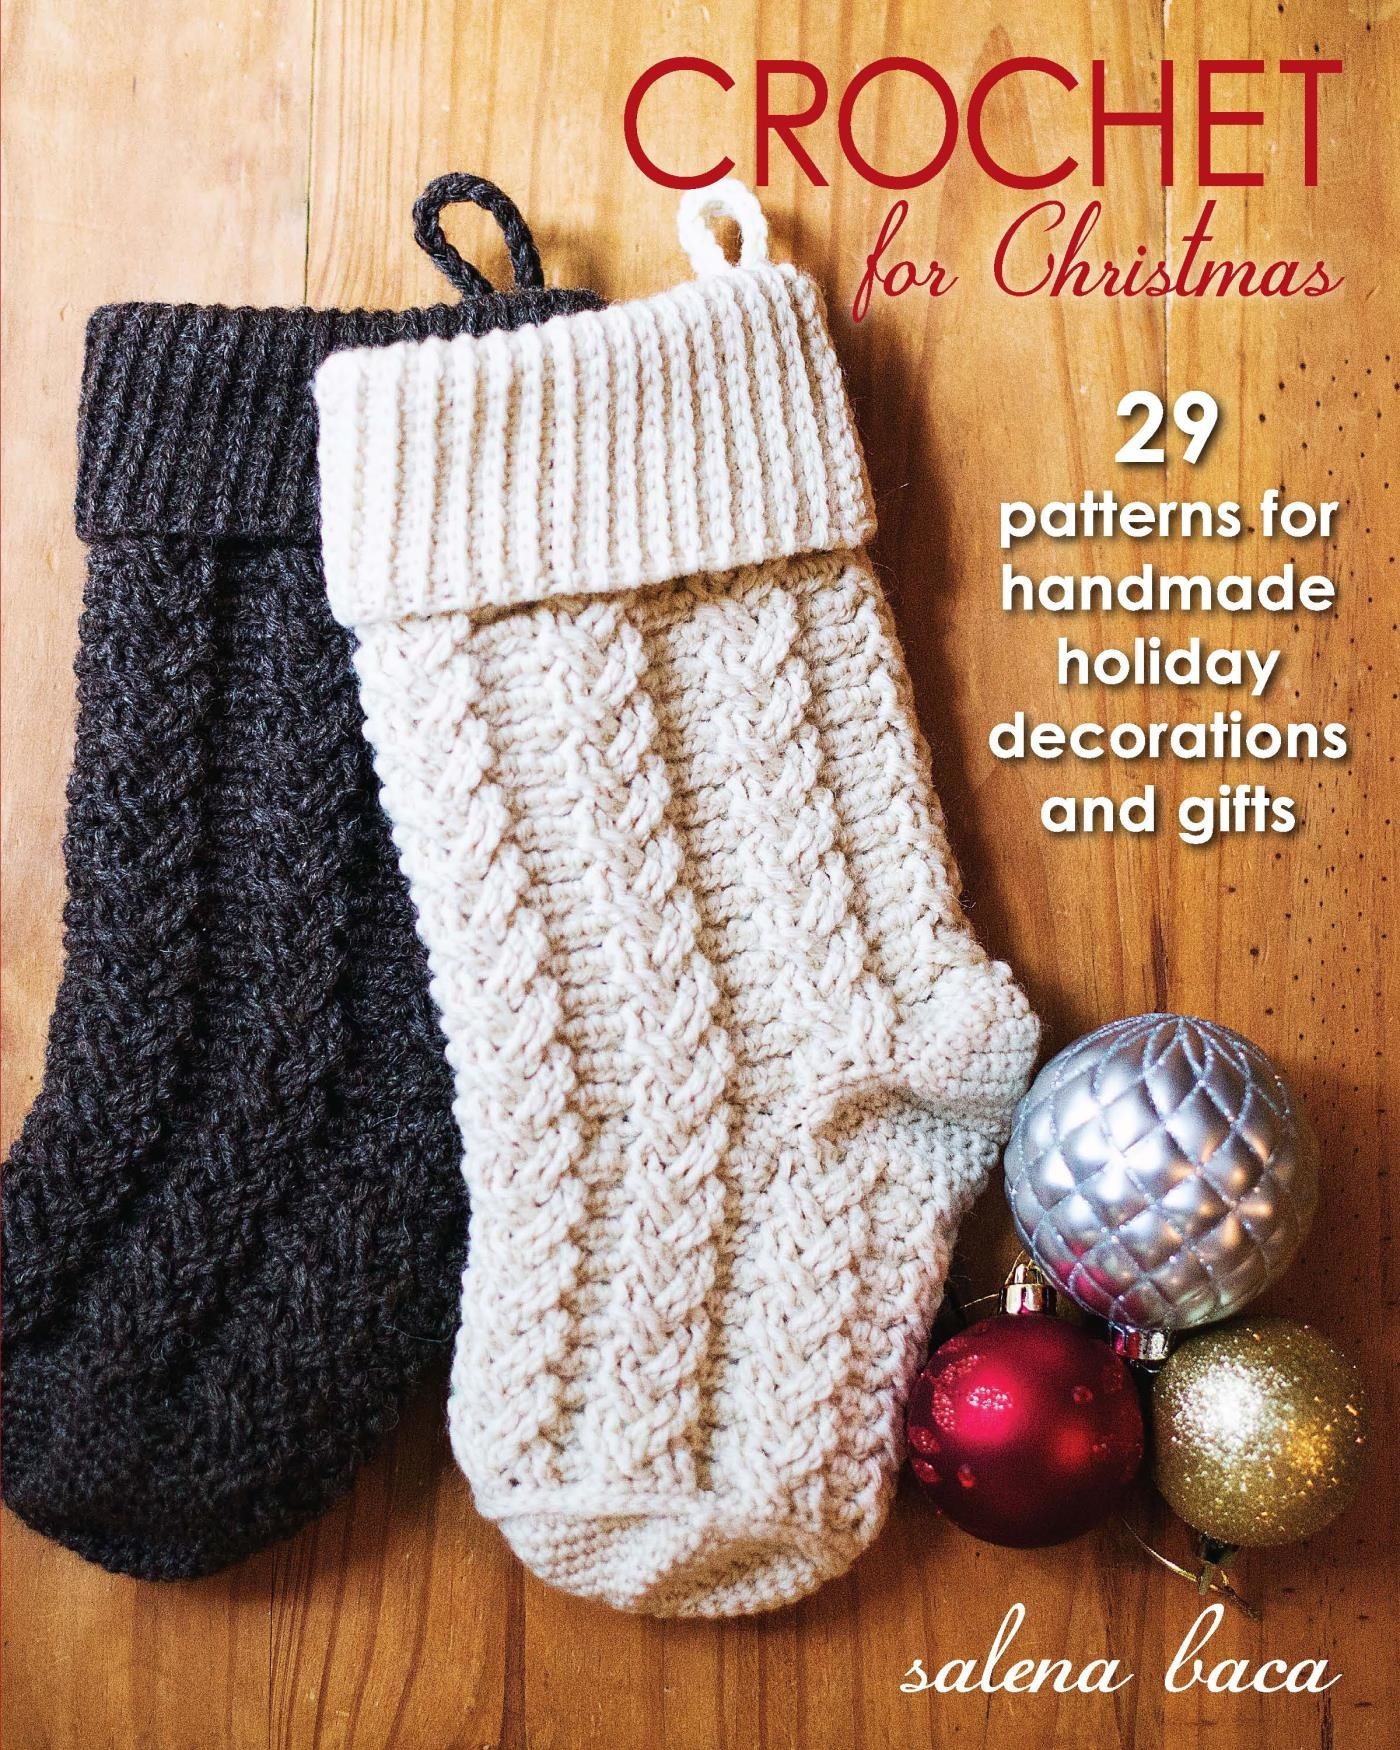 Buy for others  sc 1 st  Amazon.com & Crochet for Christmas: 29 Patterns for Handmade Holiday Decorations ...